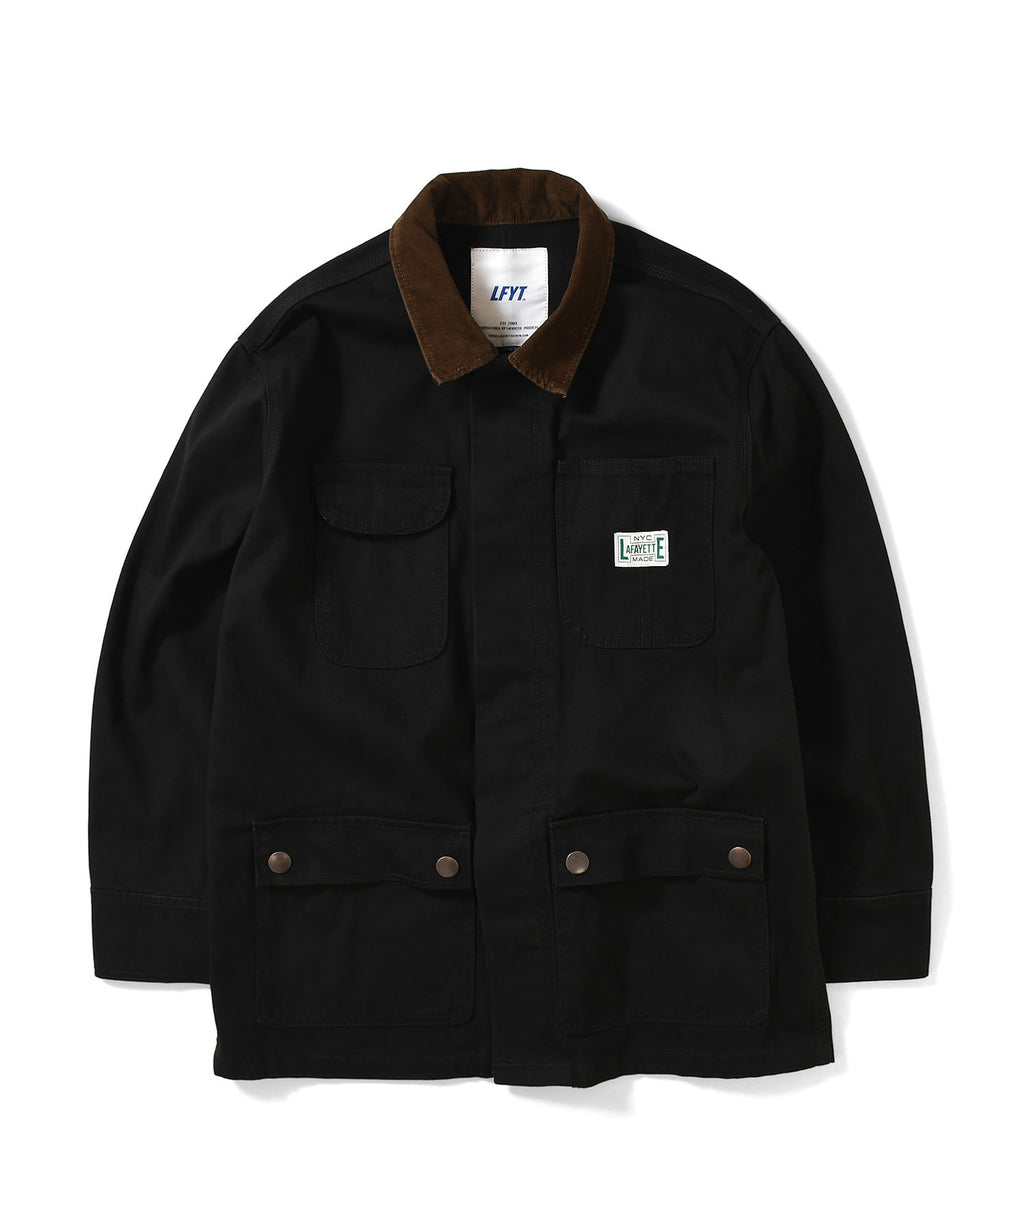 WORKERS DUCK COVERALL JACKET LA201005 BLACK